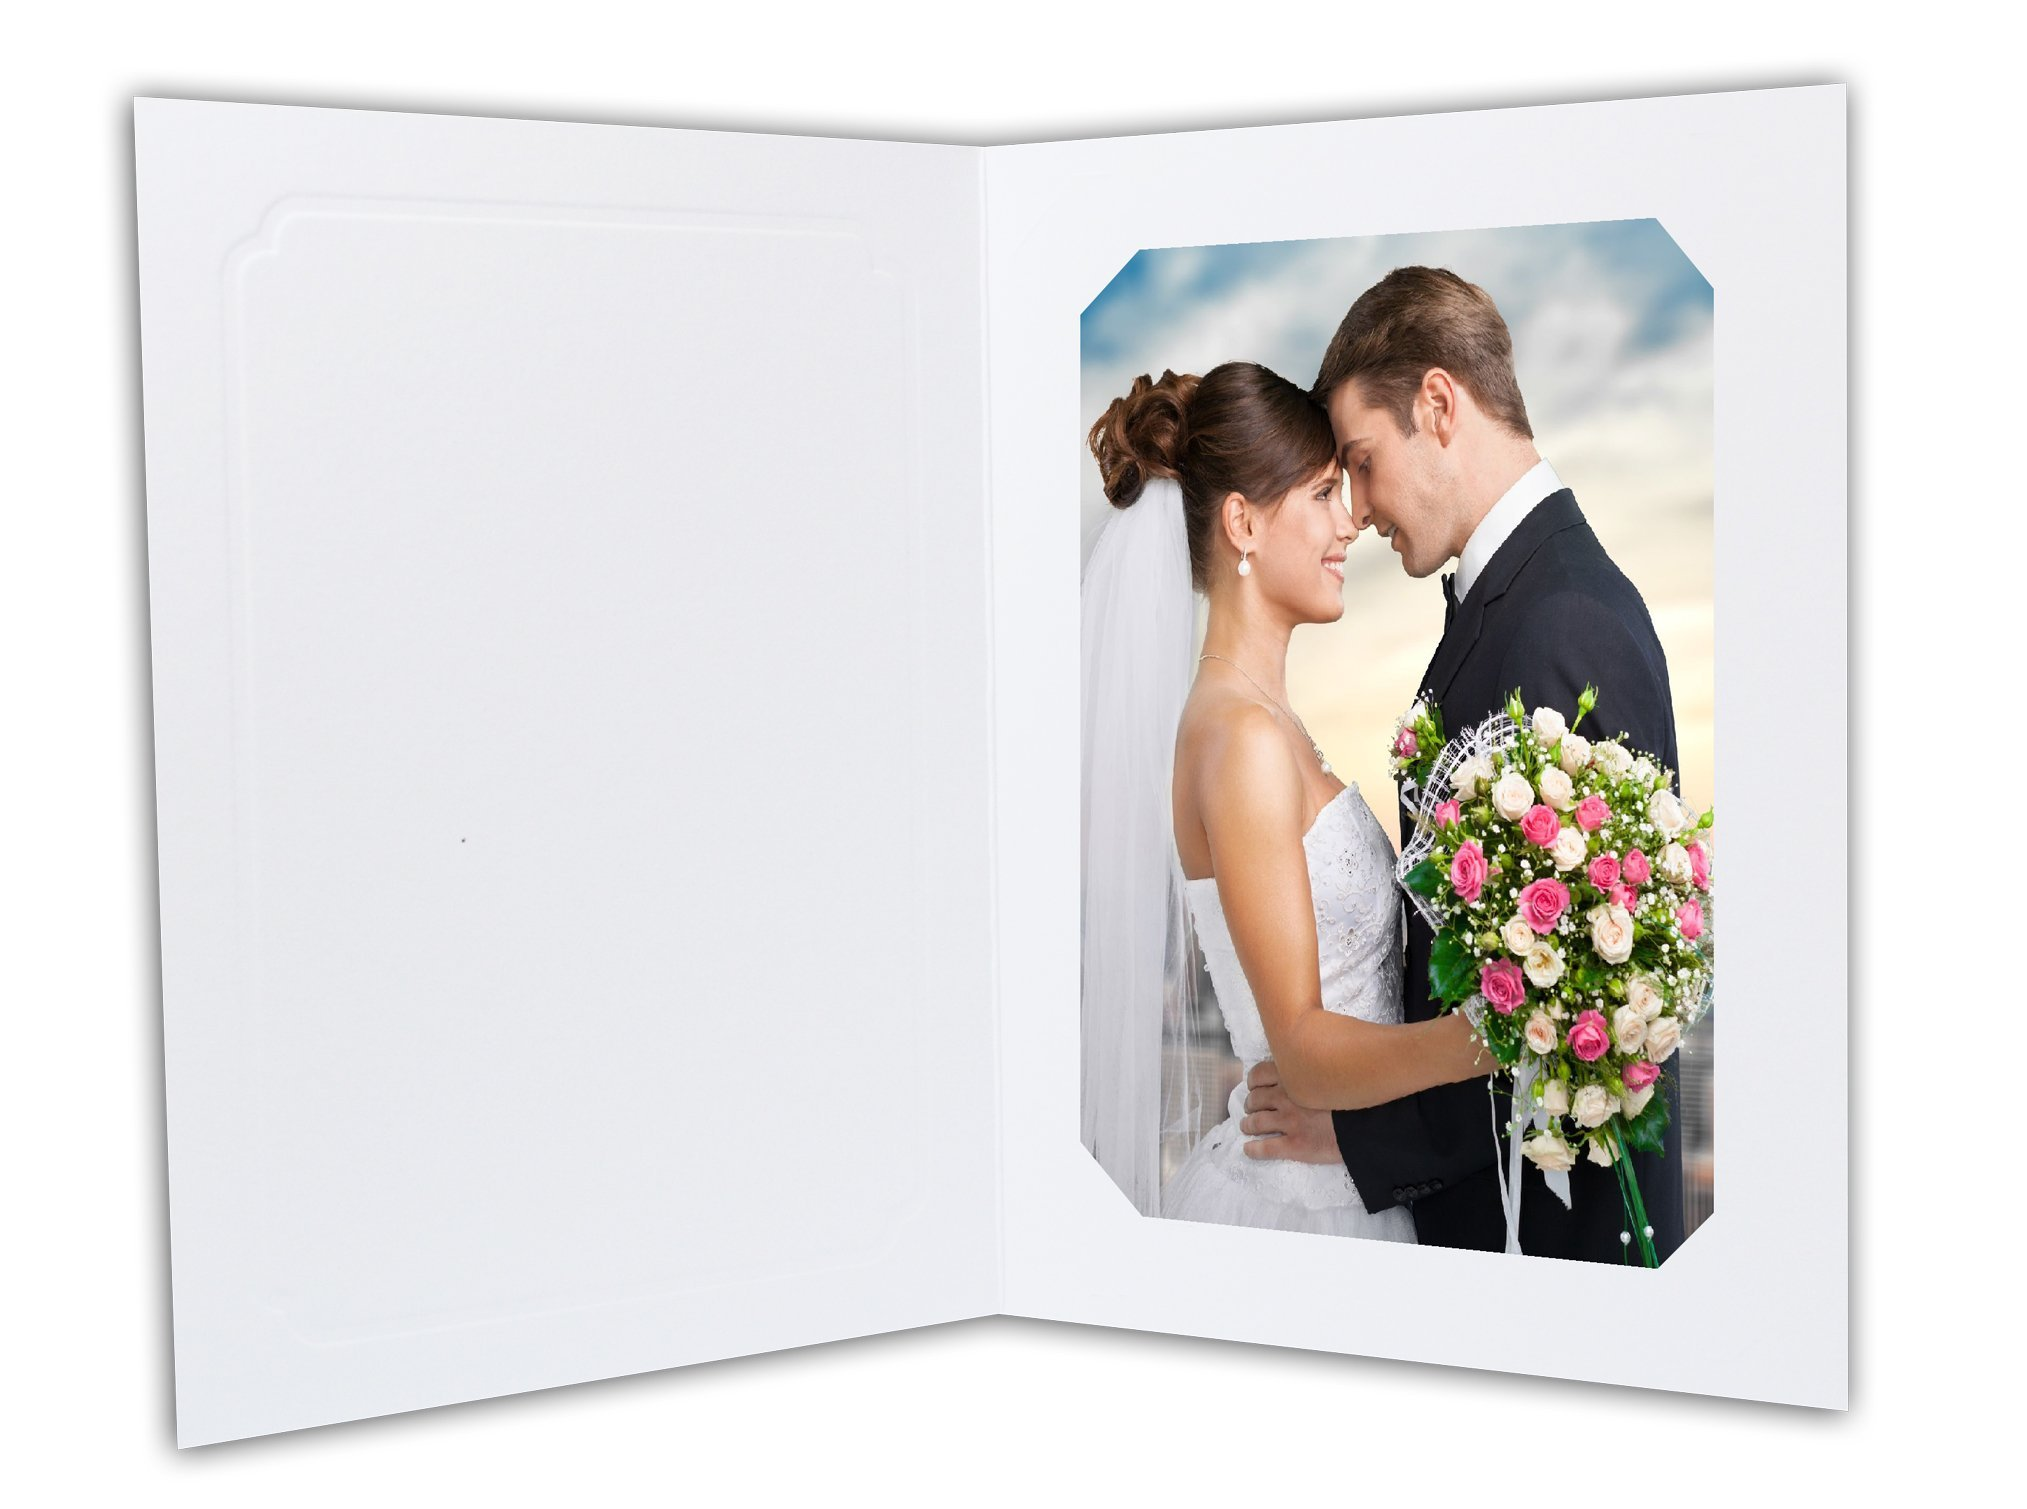 Golden State Art, Cardboard Photo Folder for 5x7/4x6 (Pack of 50) Cut corners GS010-S White Color